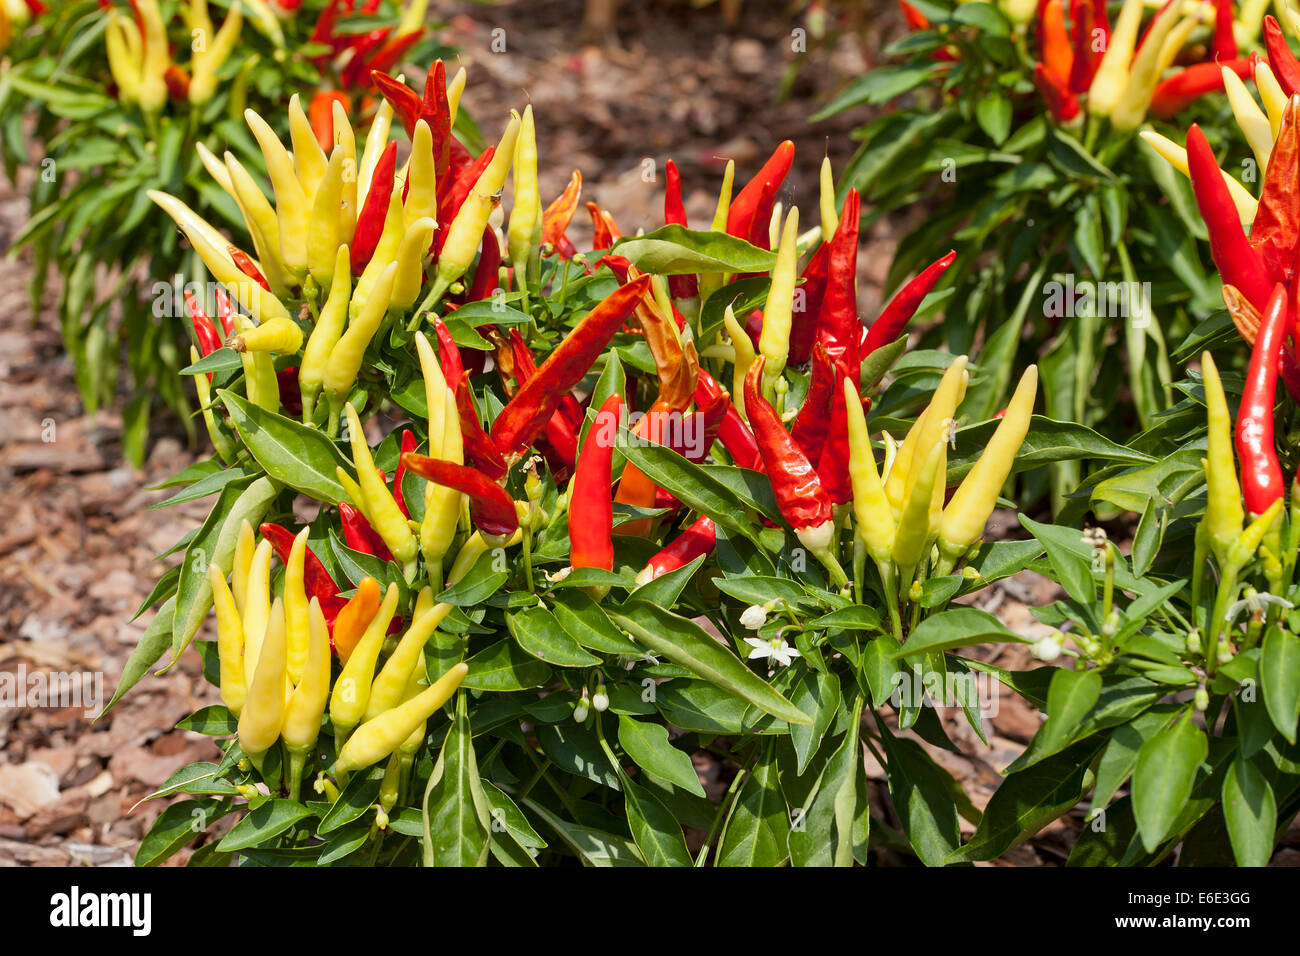 chilly chili capsicum annuum ornamental pepper plant usa stock photo royalty free image. Black Bedroom Furniture Sets. Home Design Ideas